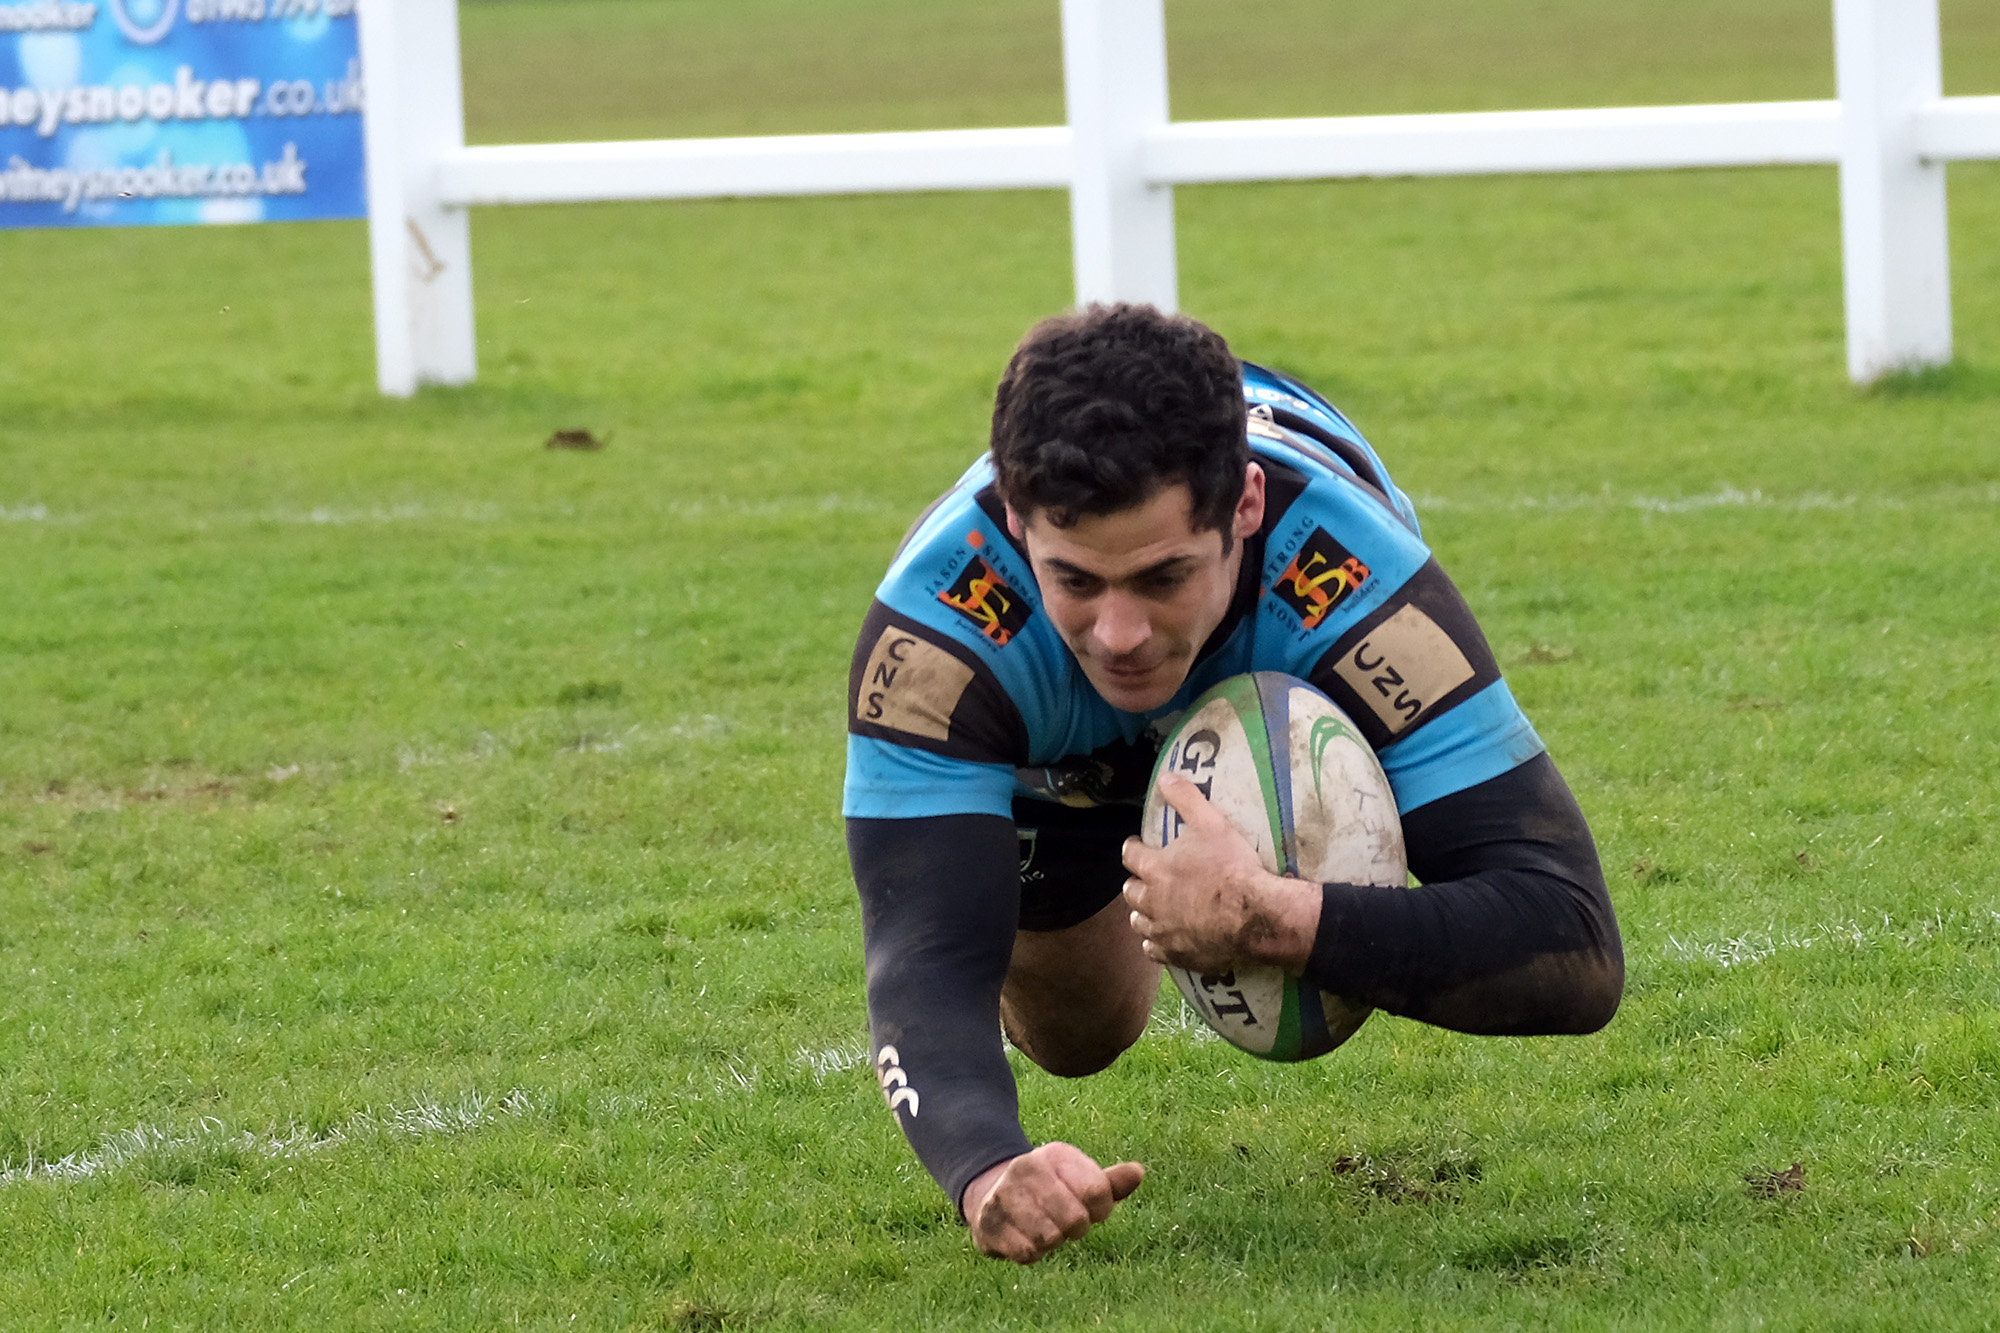 Skipper Matt Clarke goes over for Witney's opening try against Trowbridge Picture: Ric Mellis